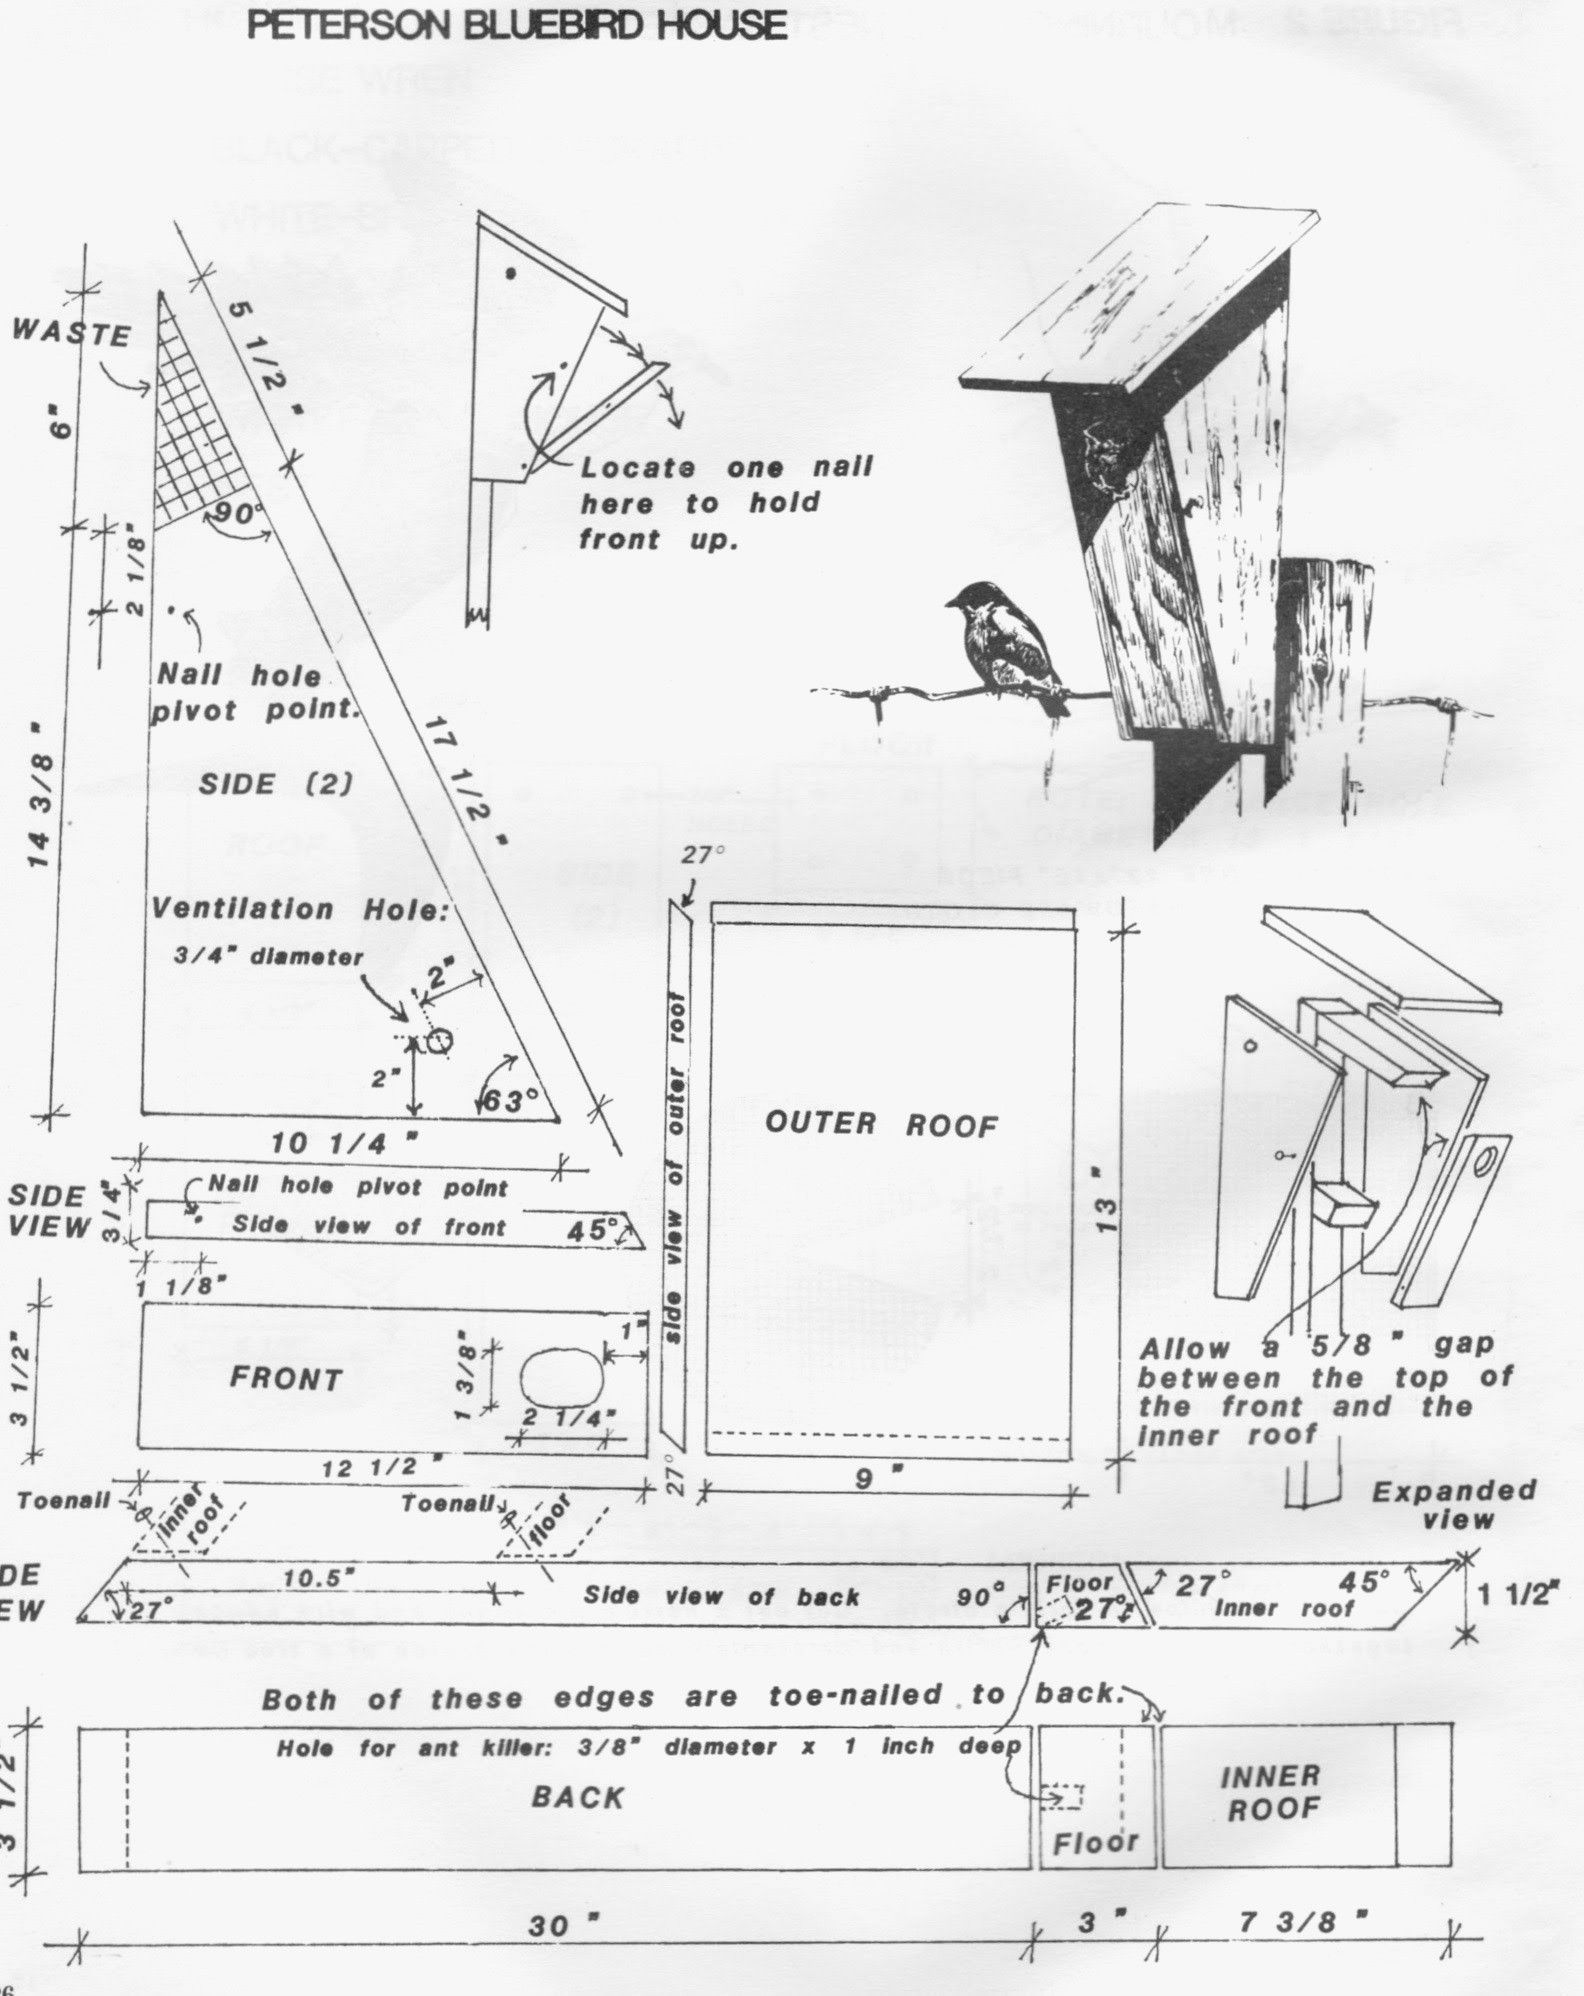 Free Birdhouse Plans For Cardinals Best Of Cardinal Bird House Plans Bluebird House Plans Bird House Plans Free Bird House Plans